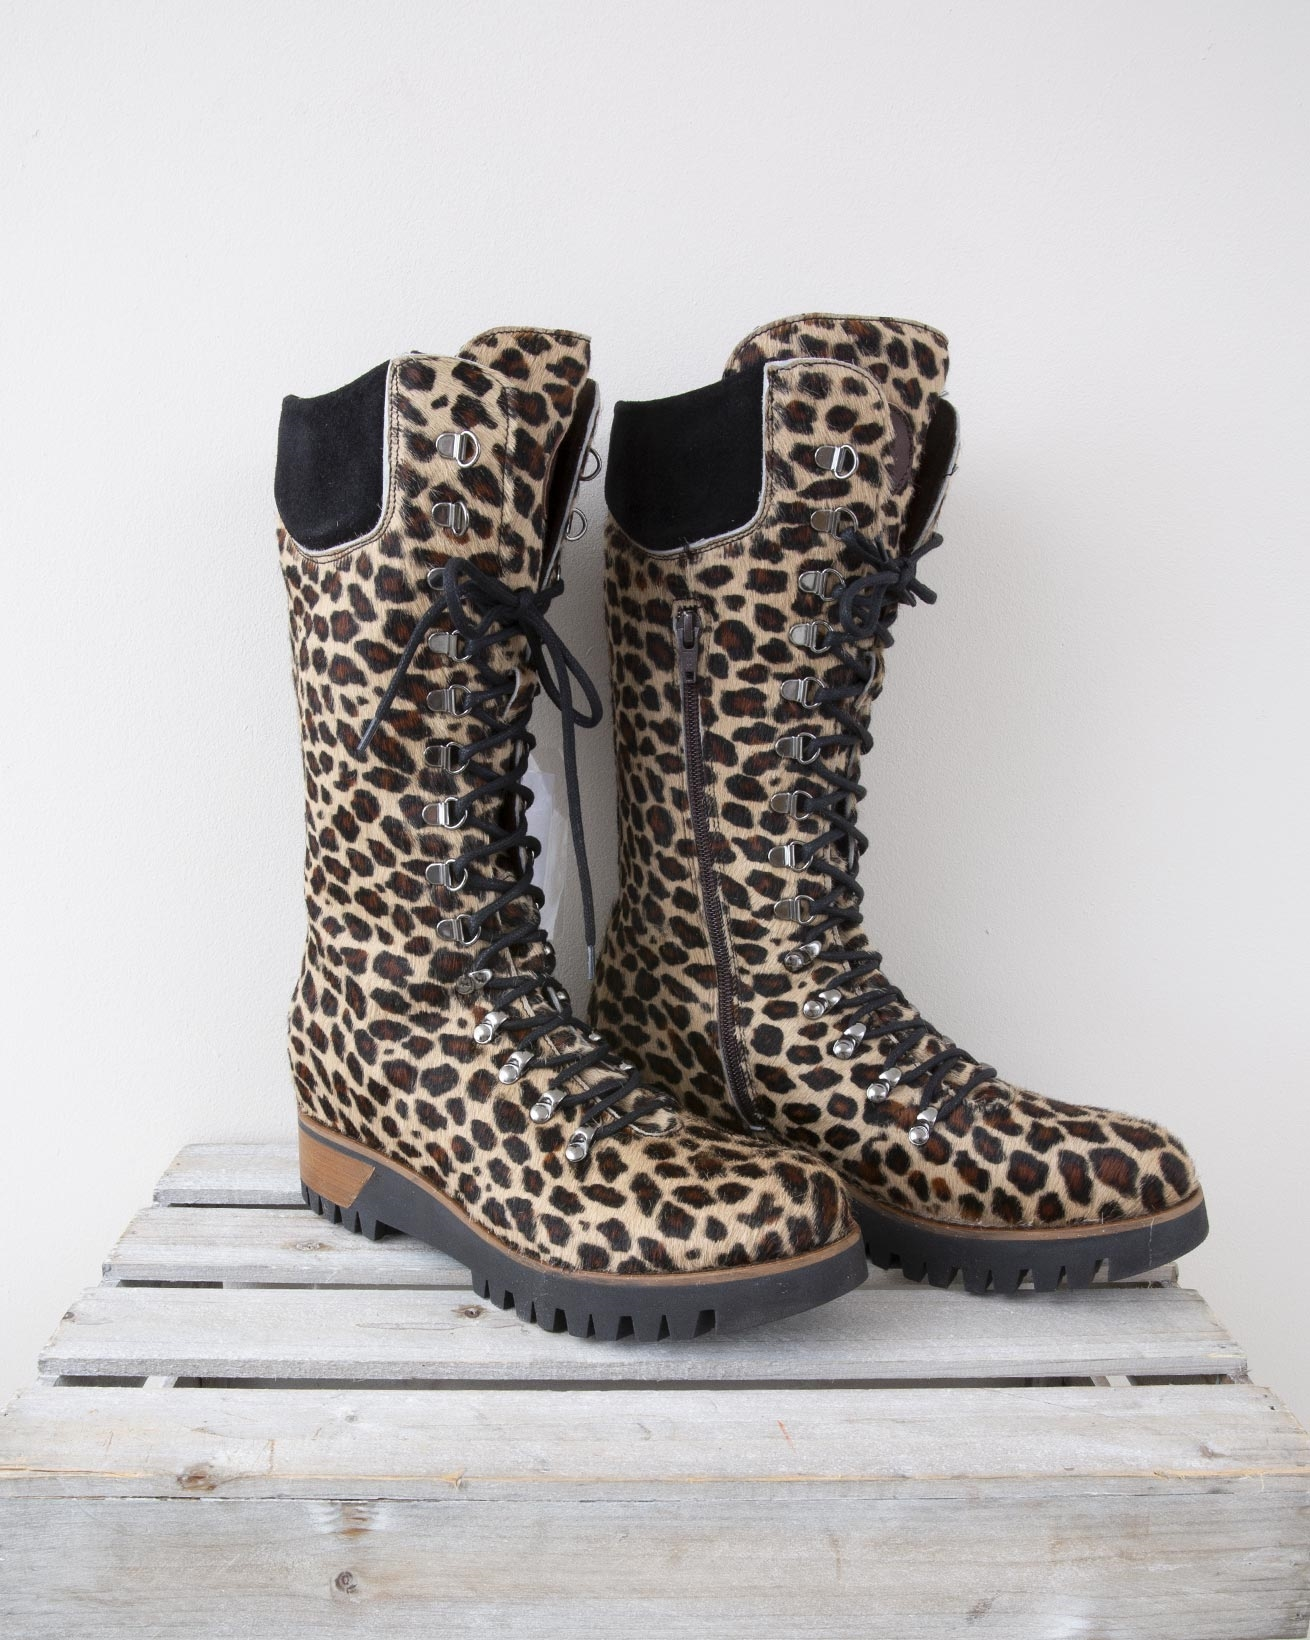 Pony Skin Wilderness Boot - Size 40 - Leopard - 1343